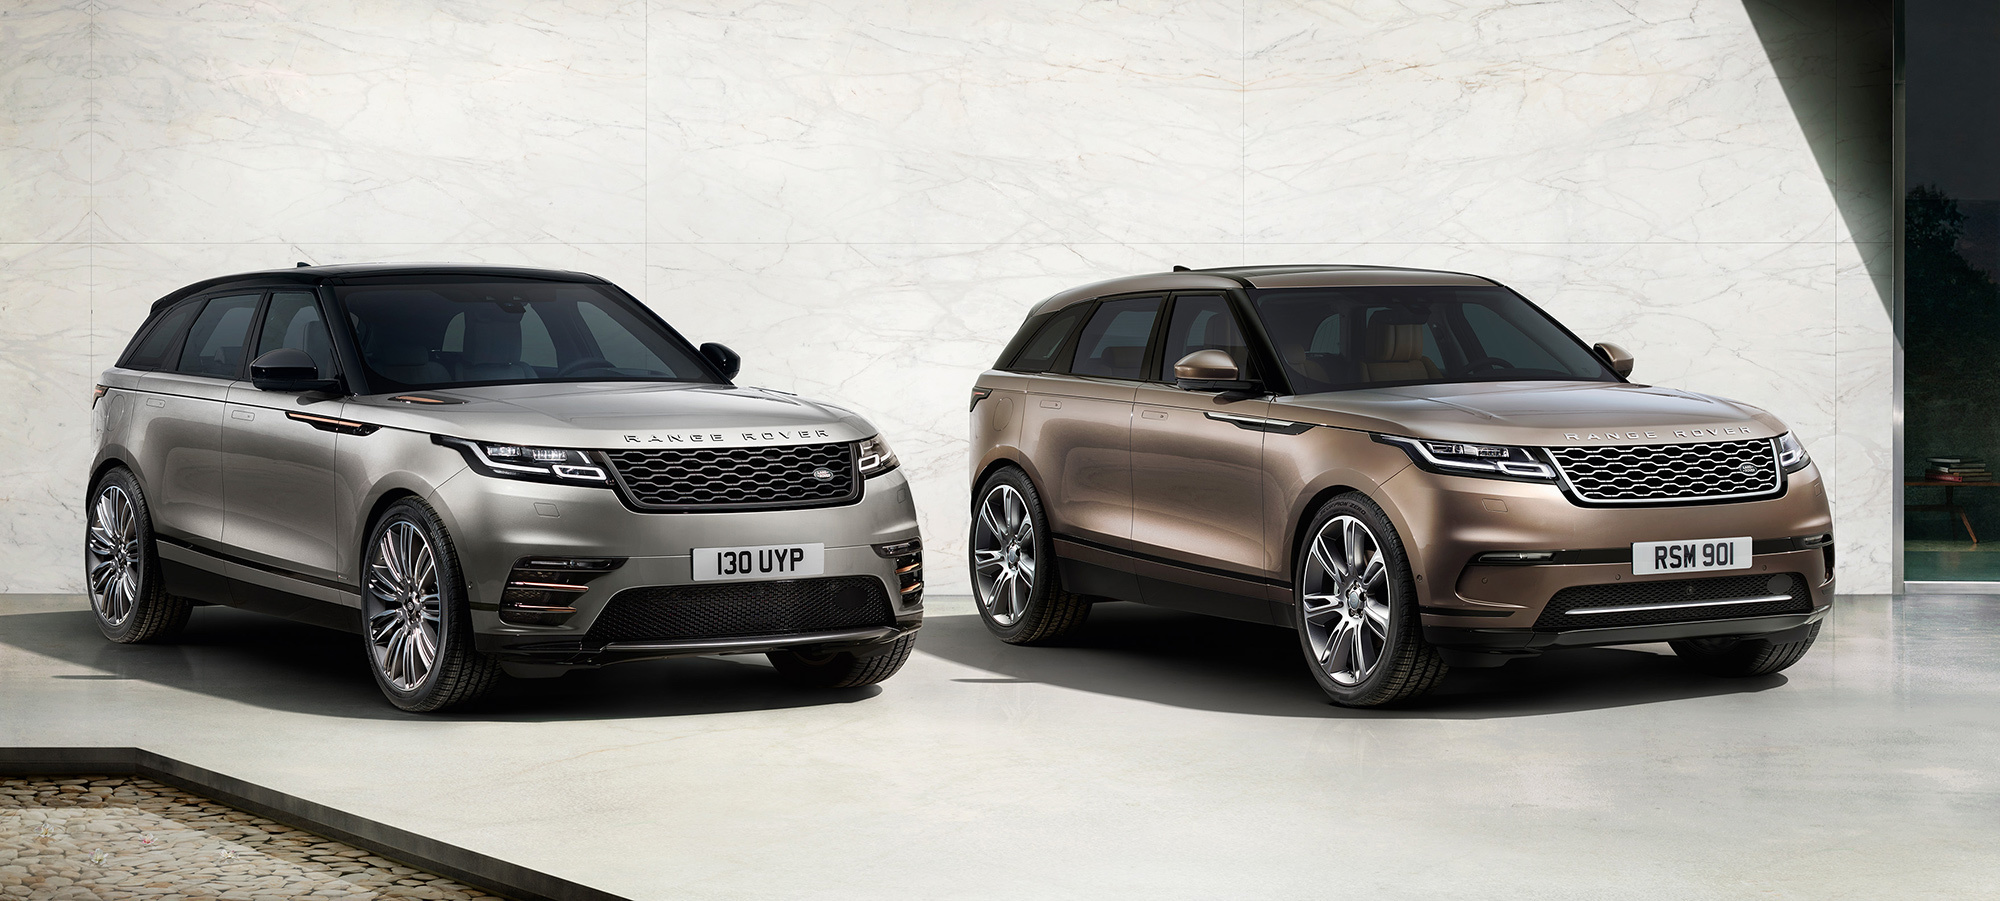 range rover velar wallpapers. Black Bedroom Furniture Sets. Home Design Ideas